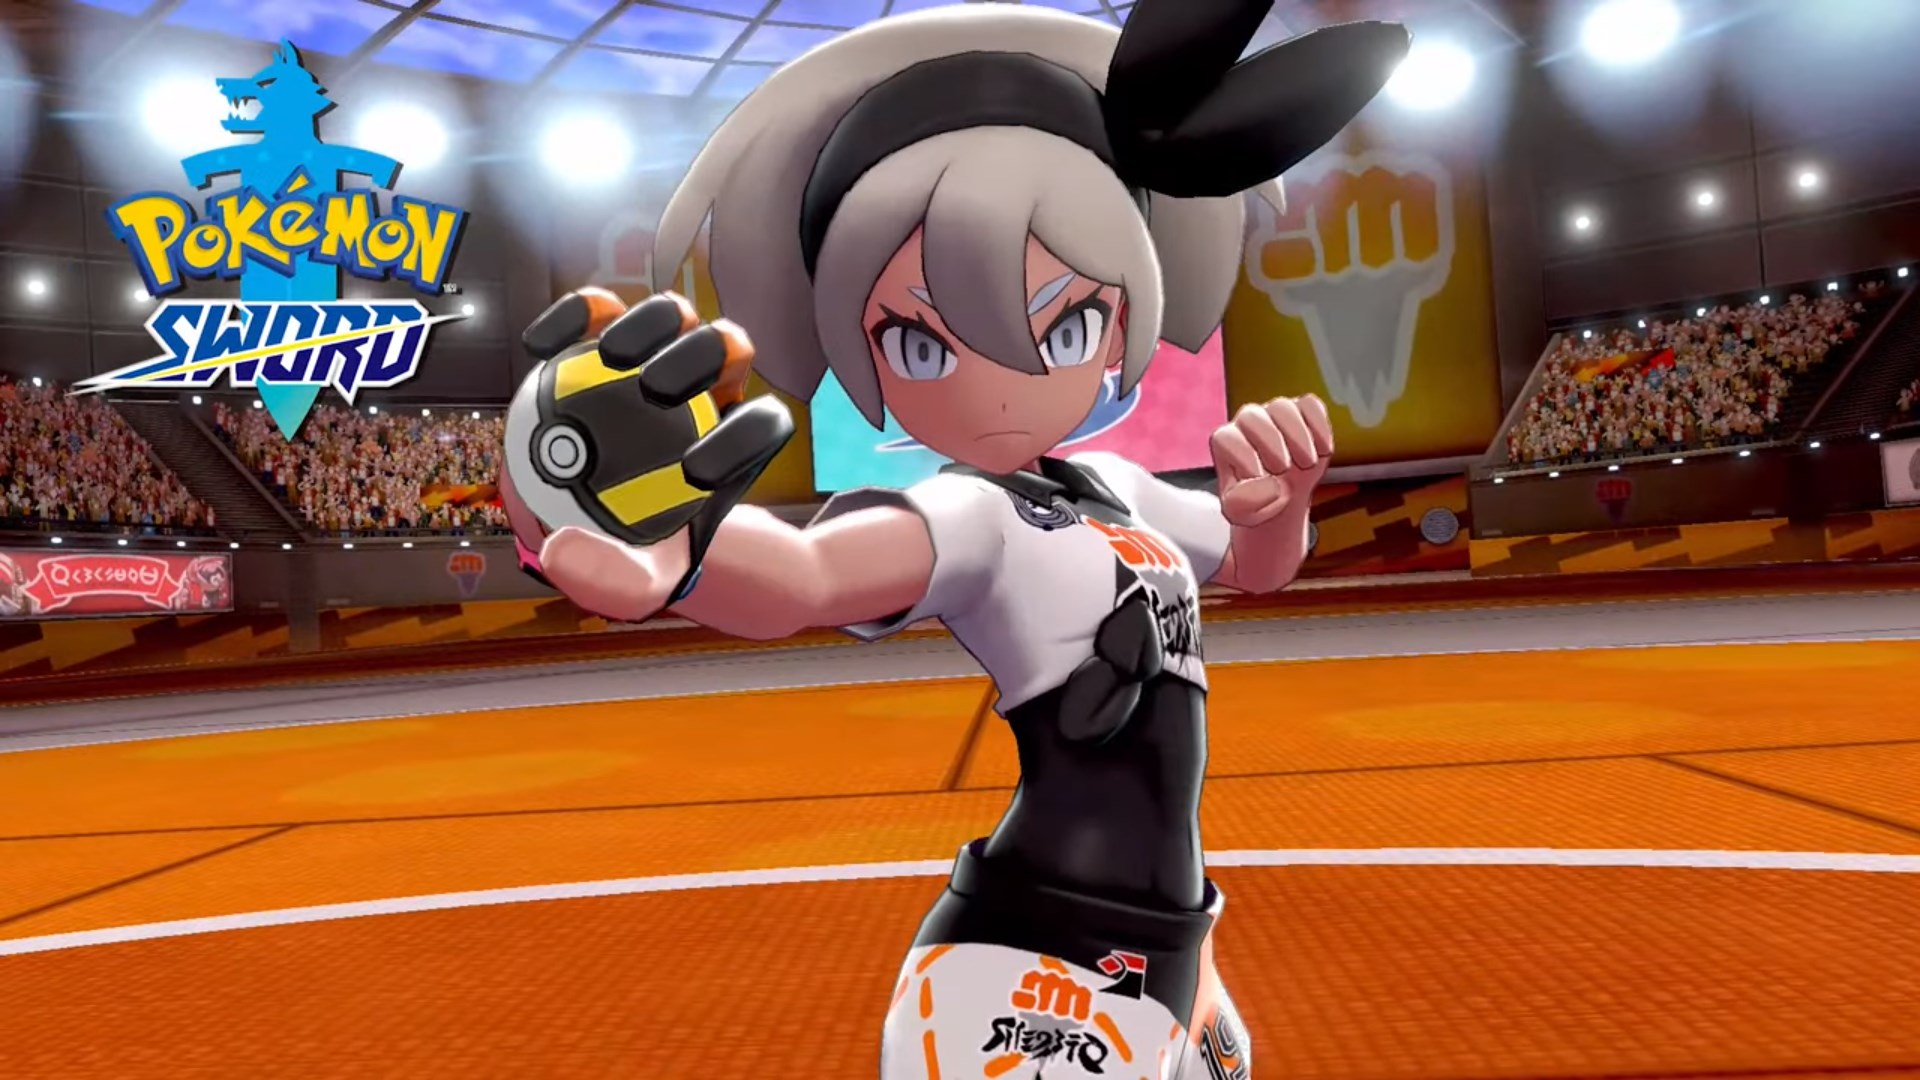 Pokemon Sword's Stow-on-Side gym: Guide to beating Bea